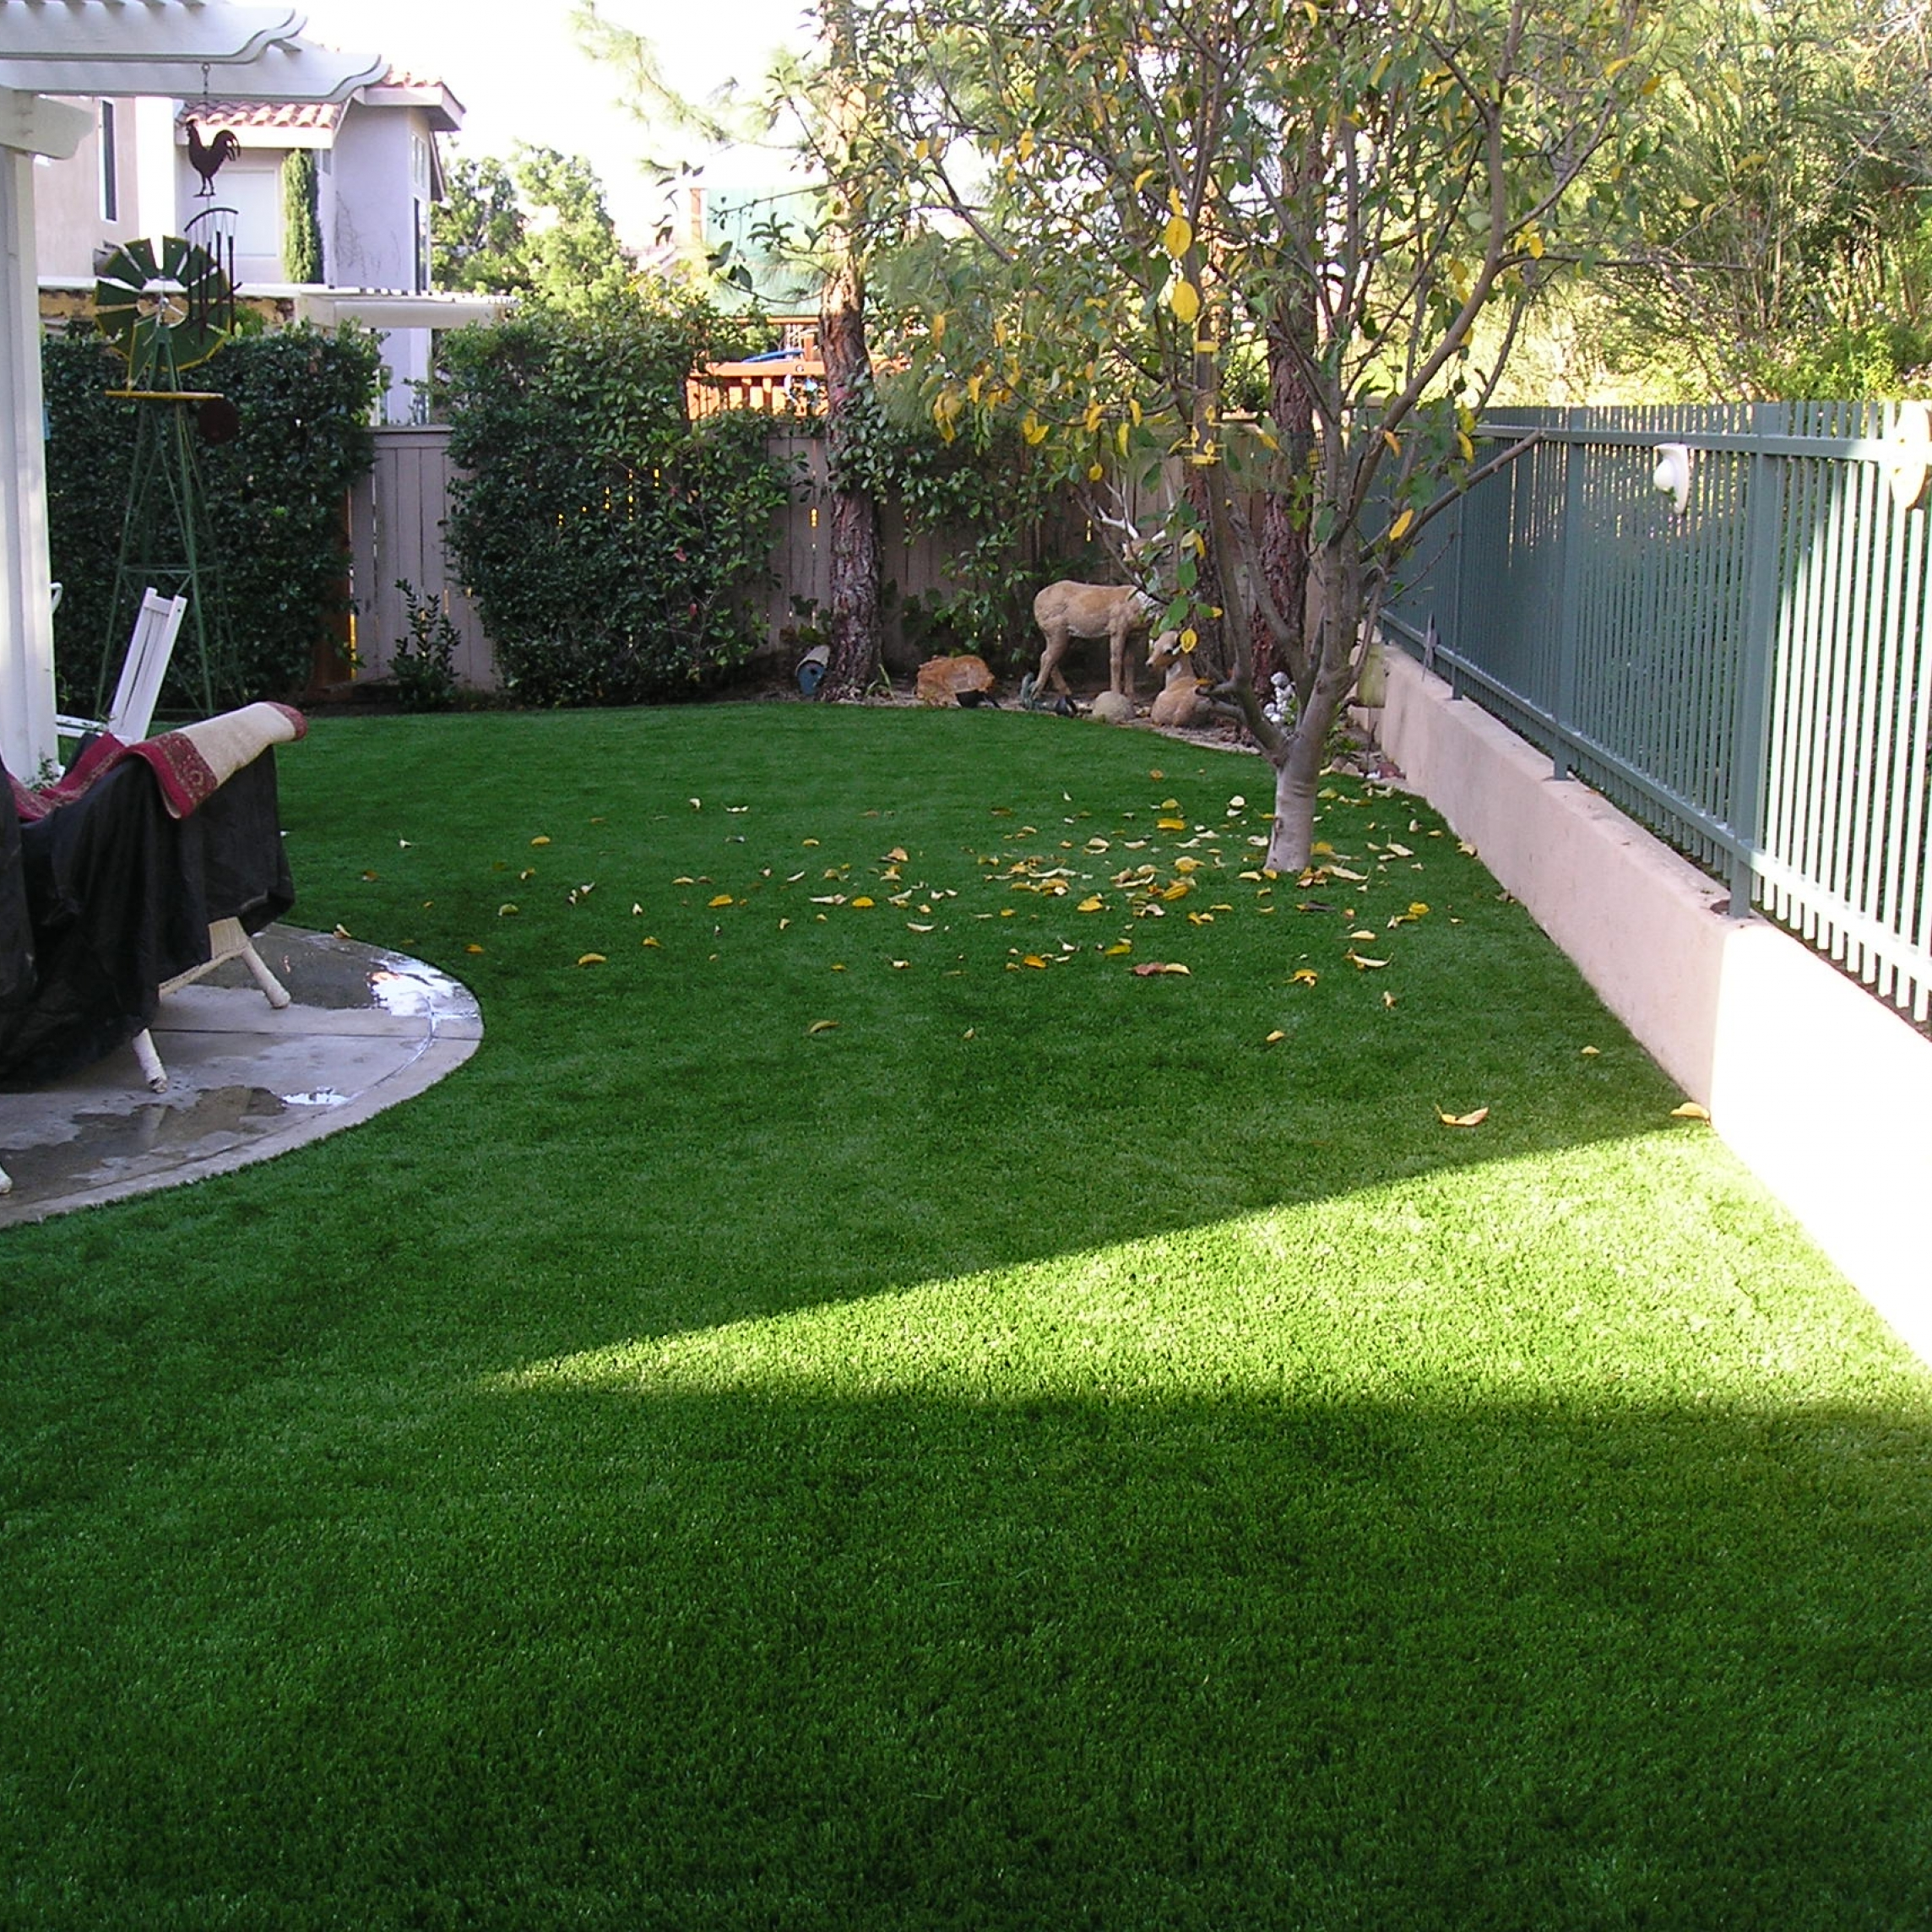 Spring-50 artificial lawns,fake lawns,artificial grass for lawns,artificial turf for lawns,fake grass for lawns,artificial turf,synthetic turf,artificial turf installation,how to install artificial turf,used artificial turf